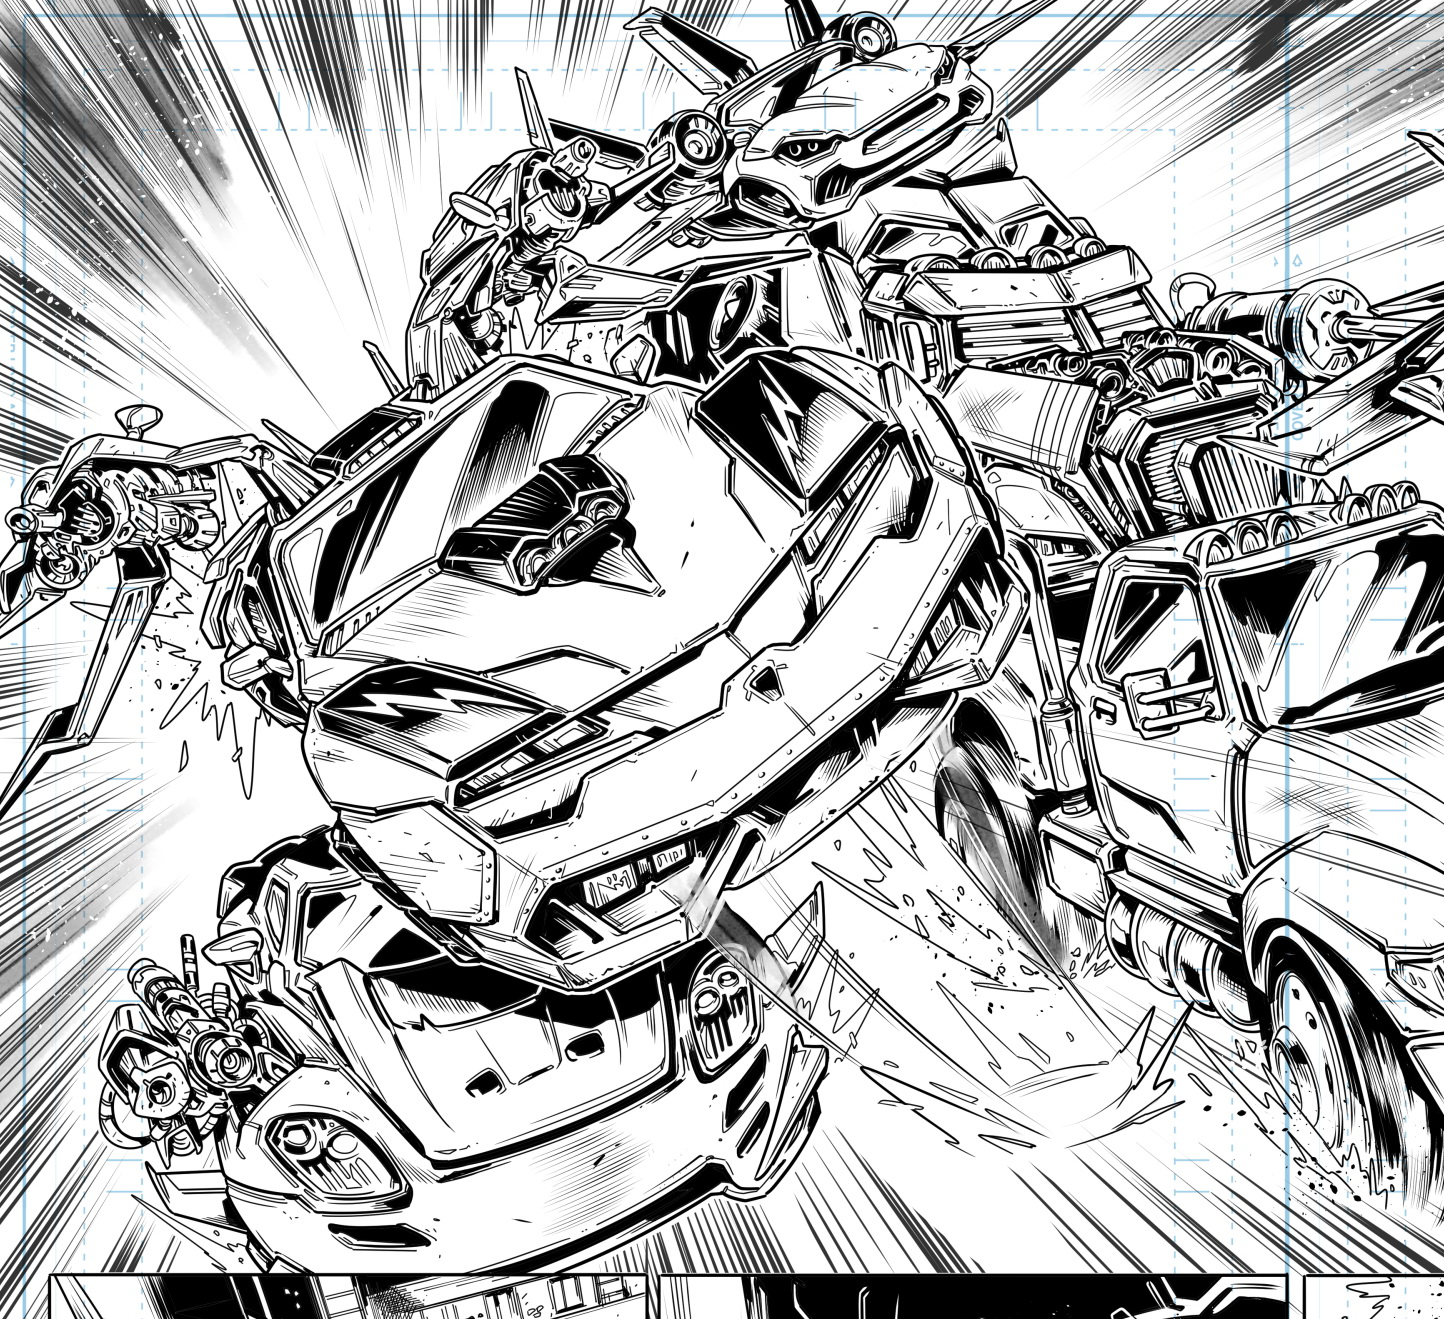 rev_02_inks_page14-15